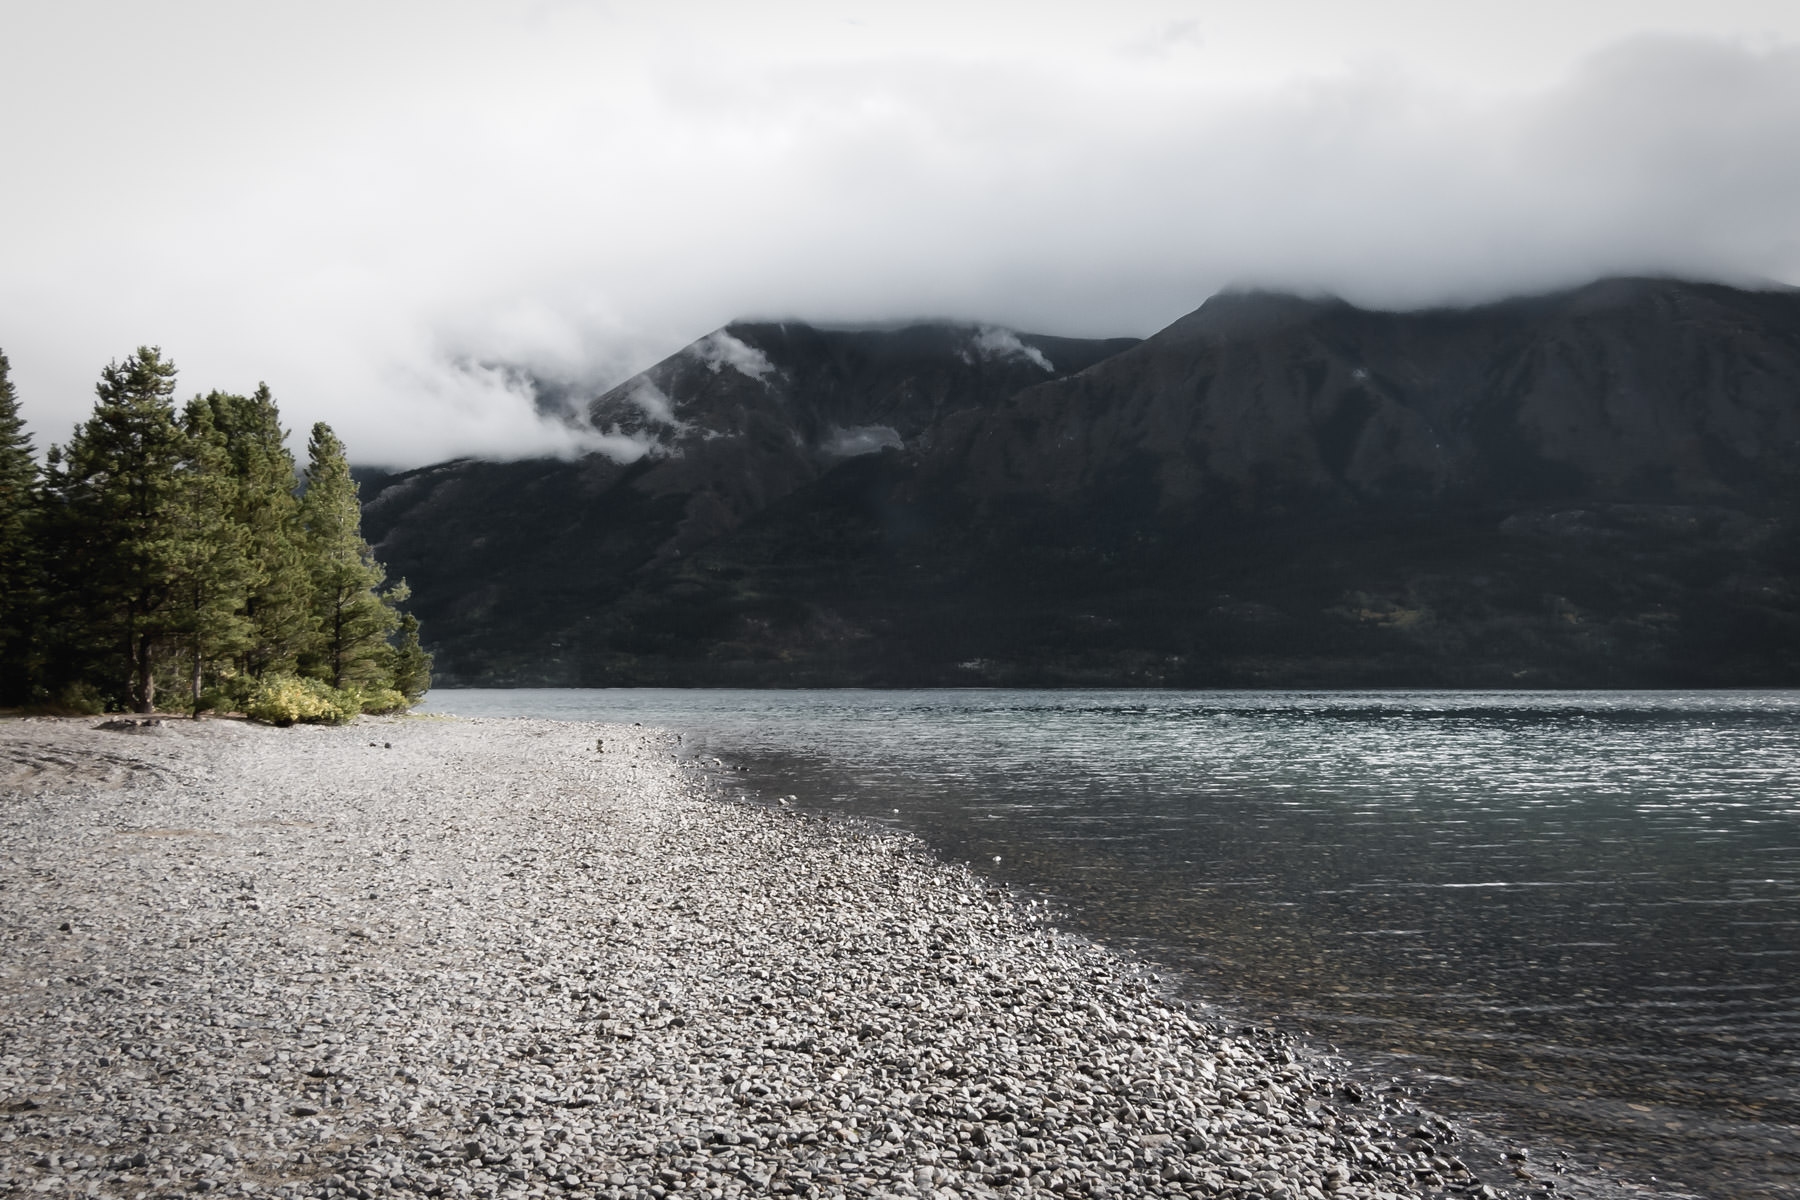 The cloudy, rocky shoreline of British Columbia's Tutshi Lake.